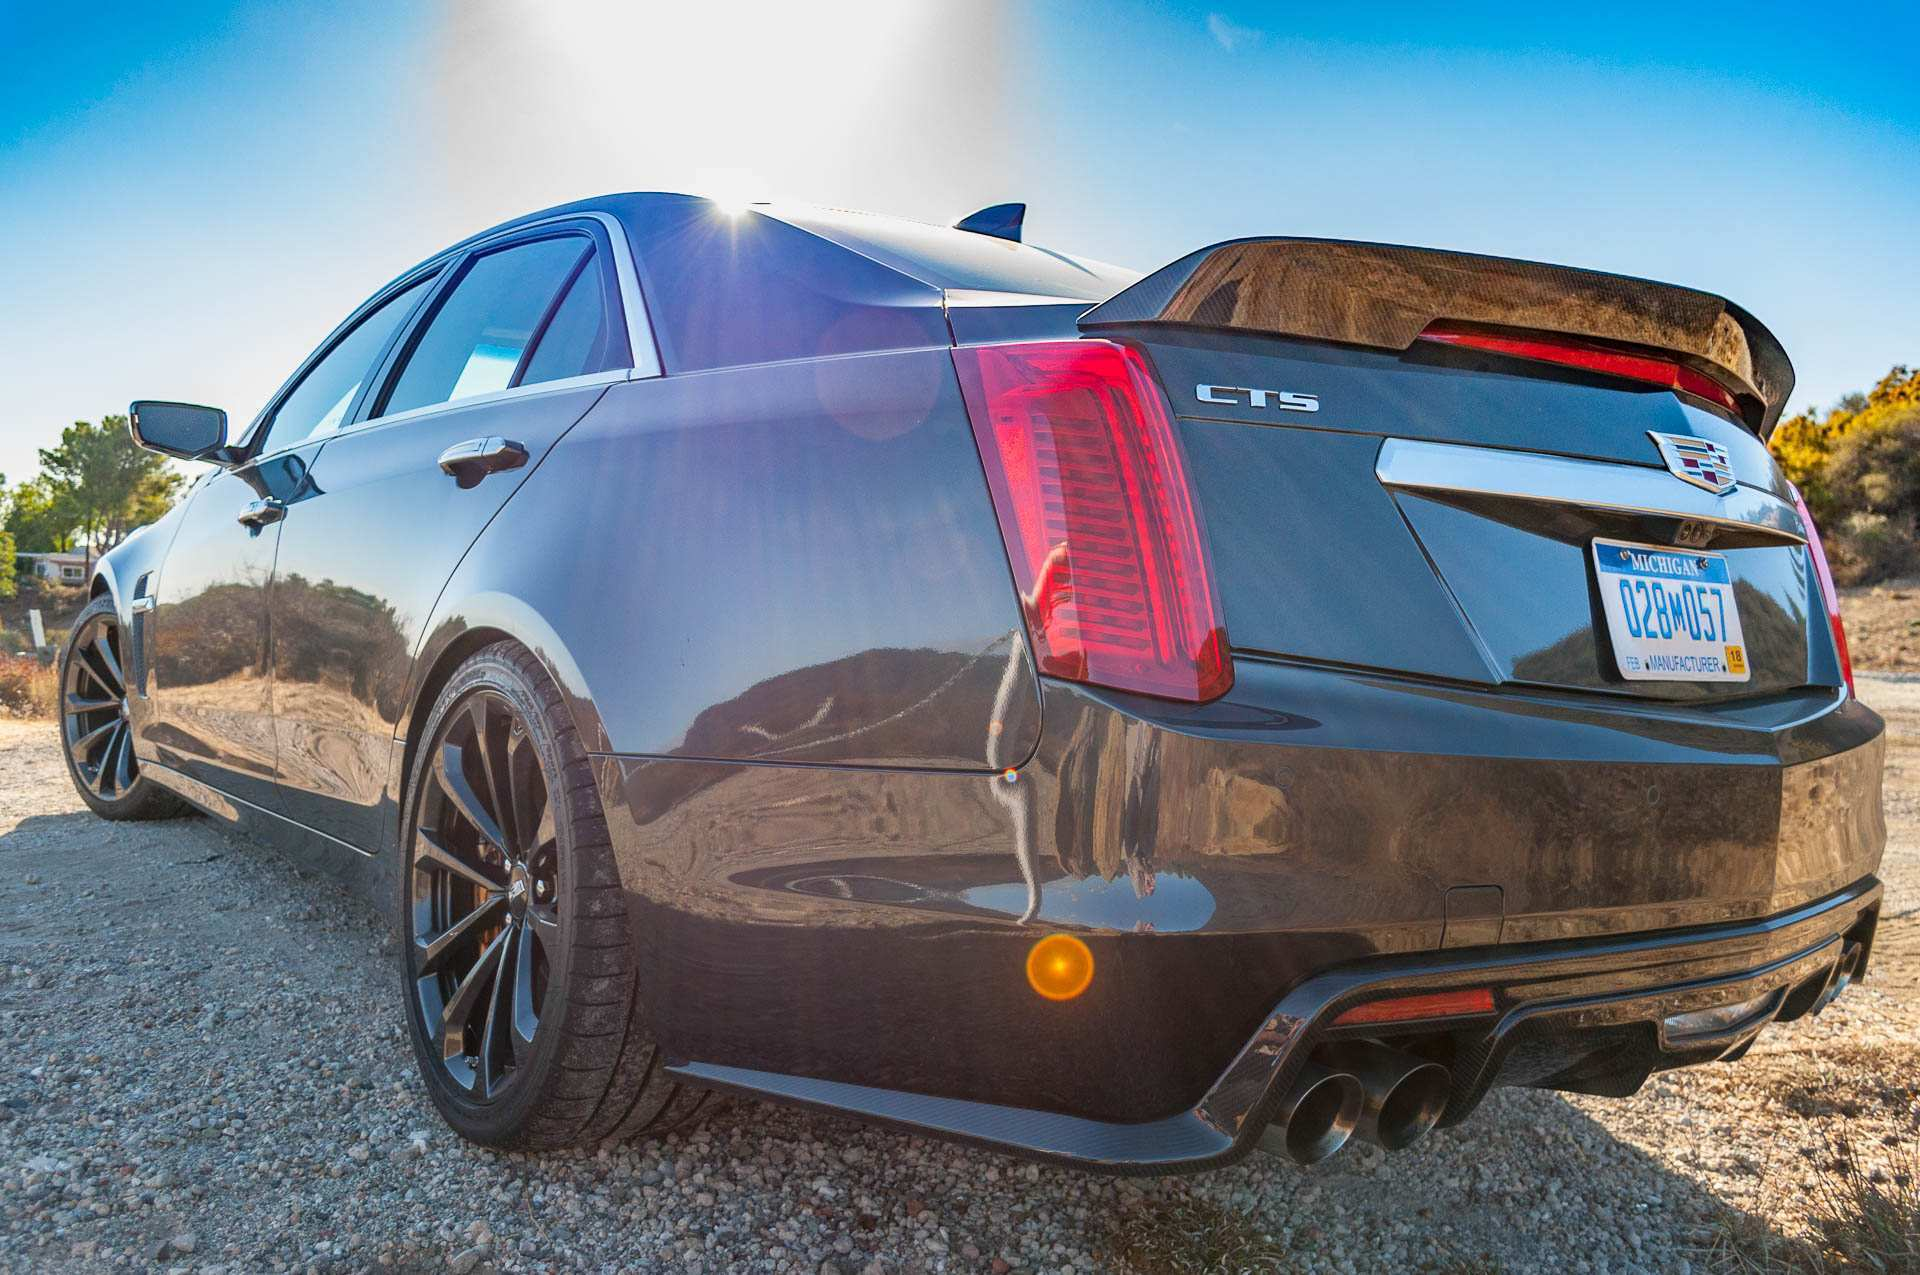 51 Great New 2019 Cadillac Cts V Hp First Drive Performance and New Engine for New 2019 Cadillac Cts V Hp First Drive